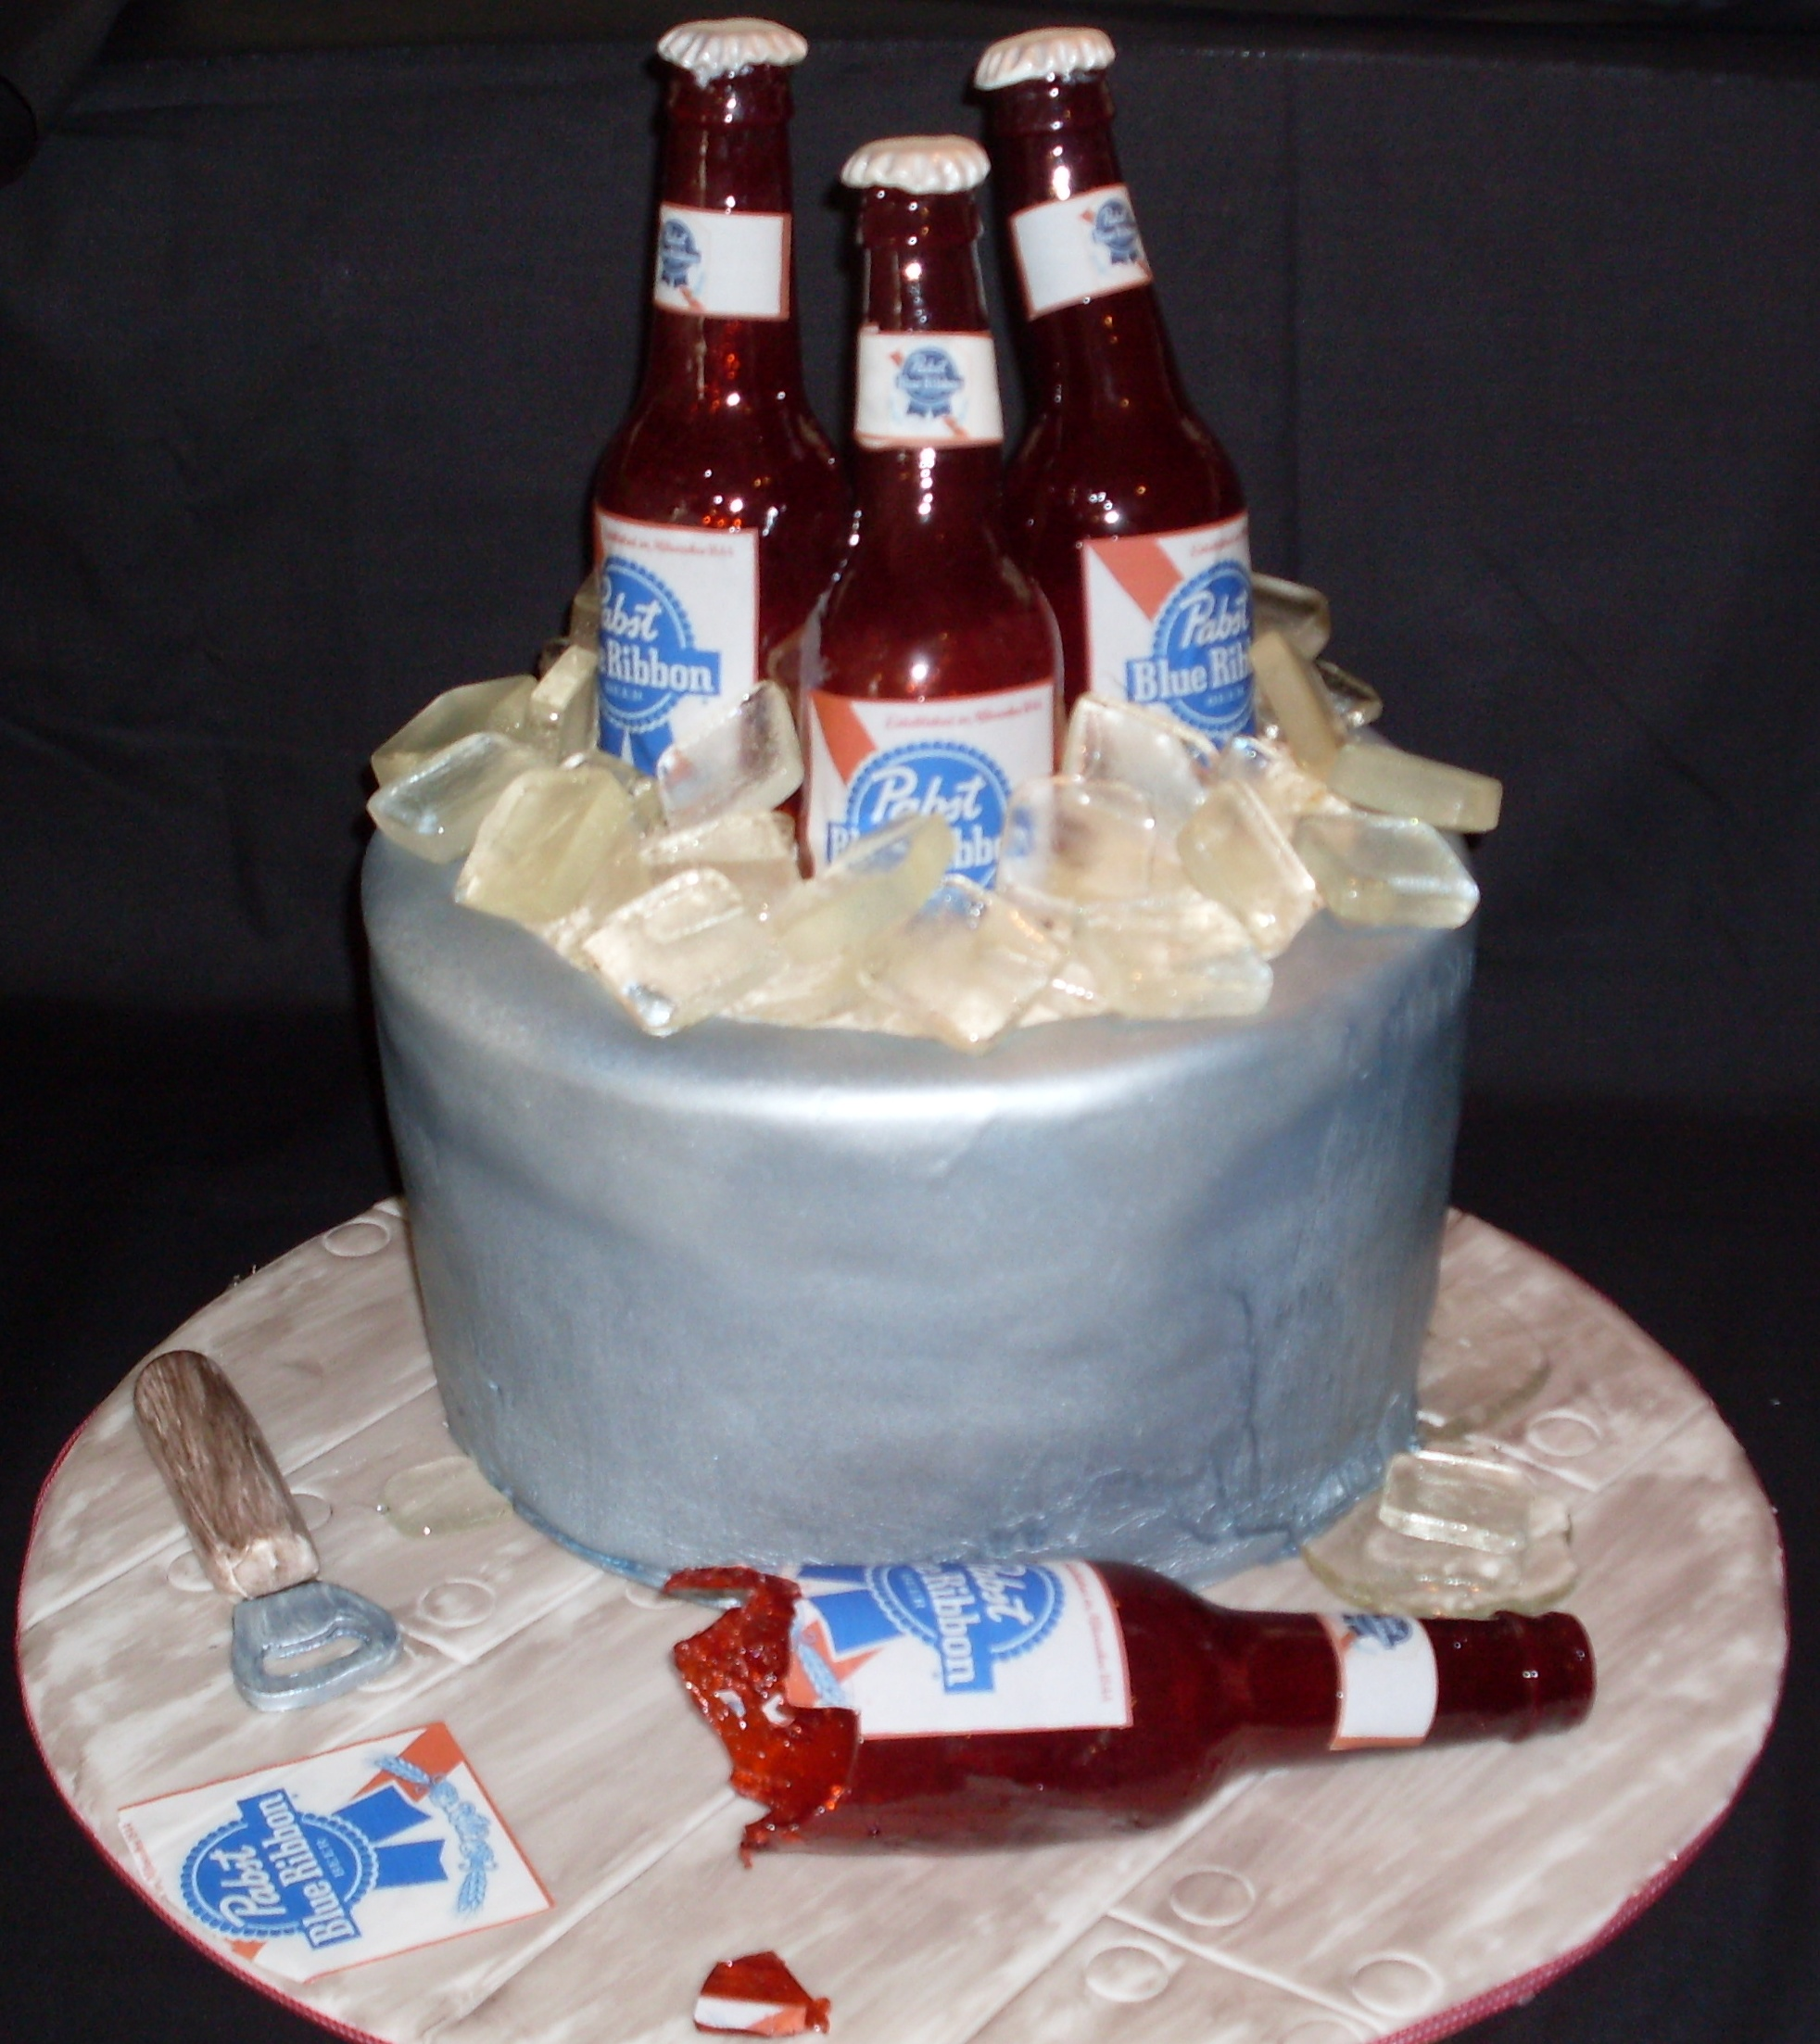 Swell Beer Bottle Cakes Decoration Ideas Little Birthday Cakes Personalised Birthday Cards Epsylily Jamesorg